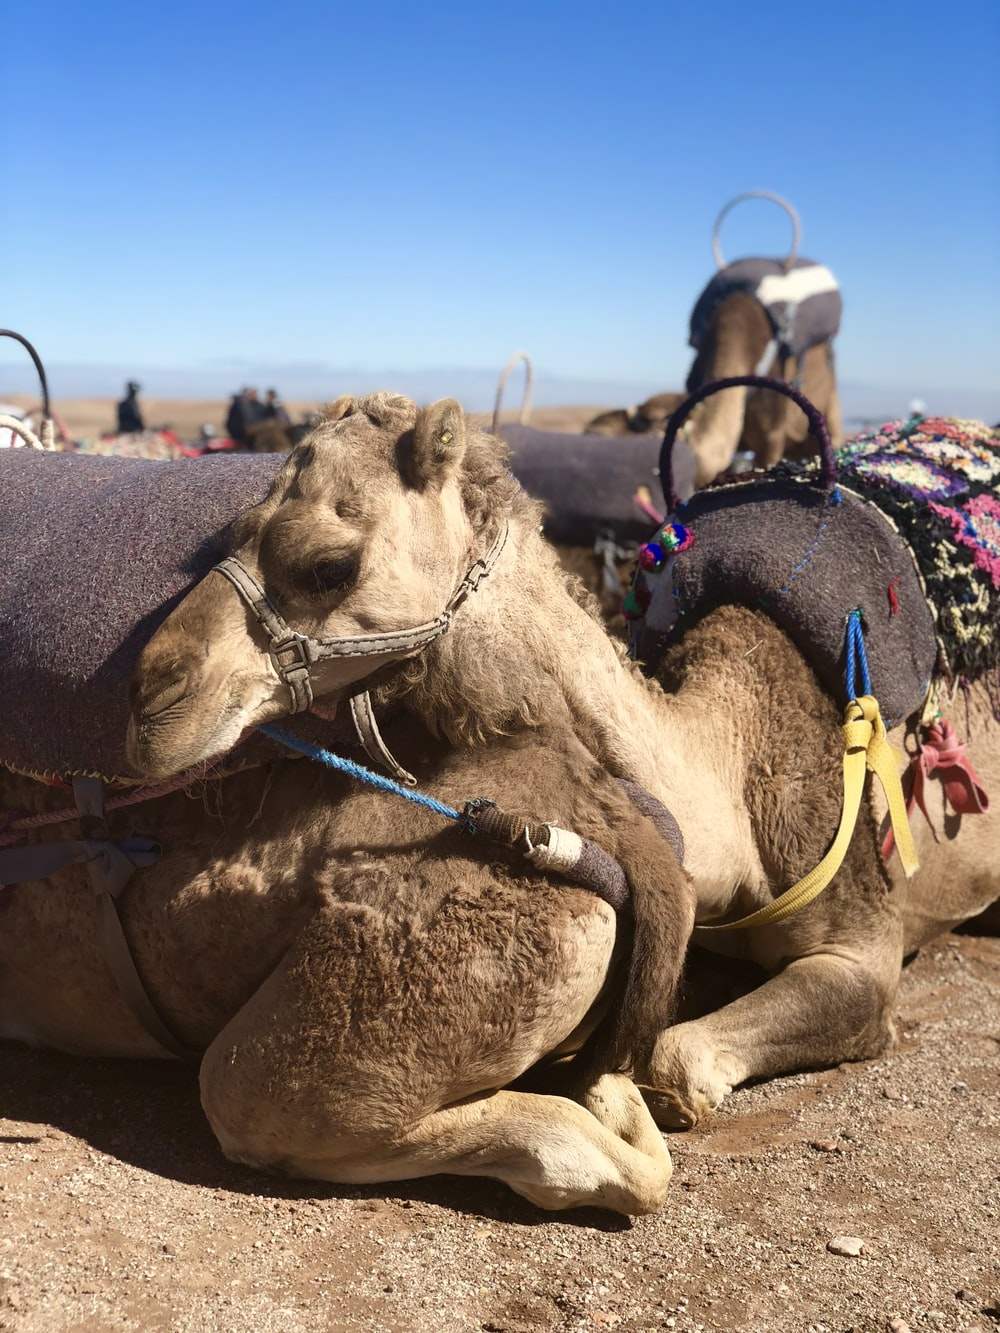 brown camel lying on brown ground under blue sky